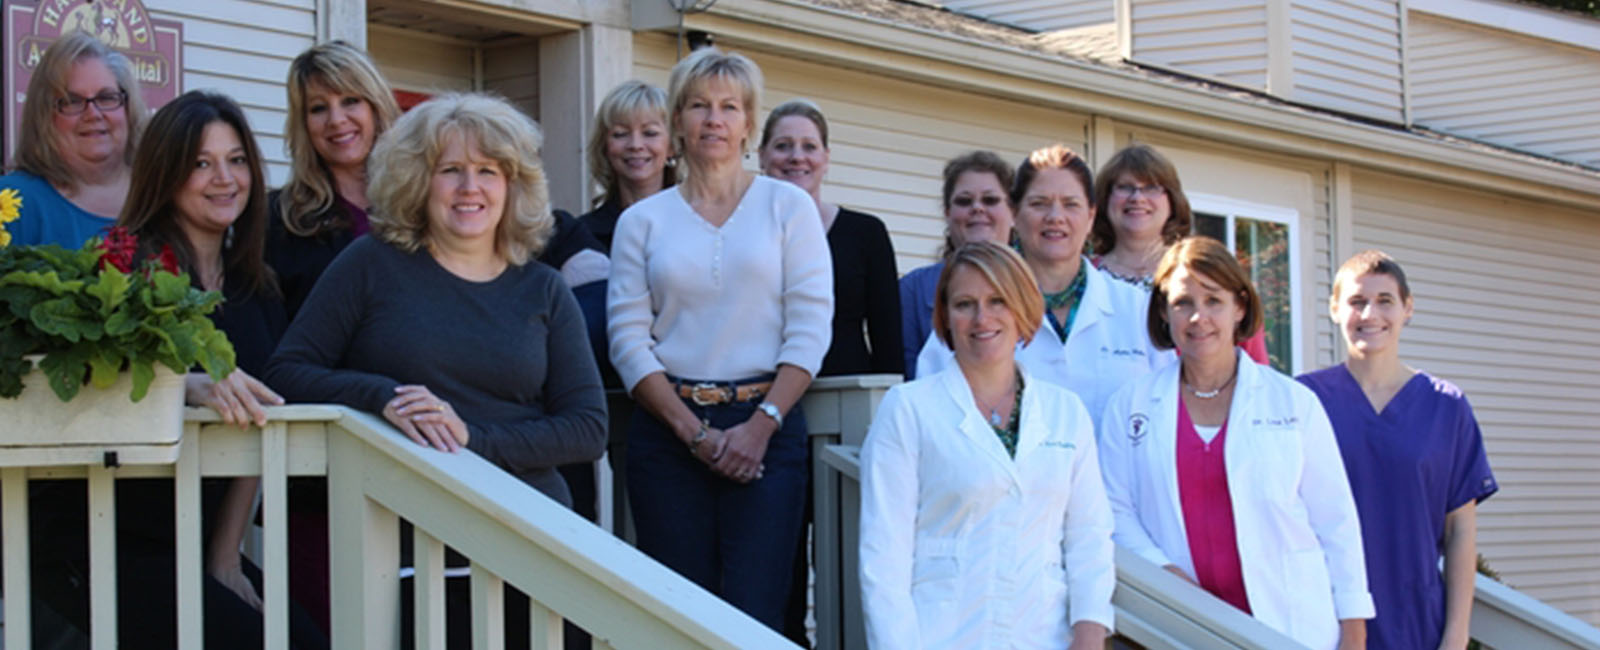 Homepage Team Picture of VCA Hartland Animal Hospital